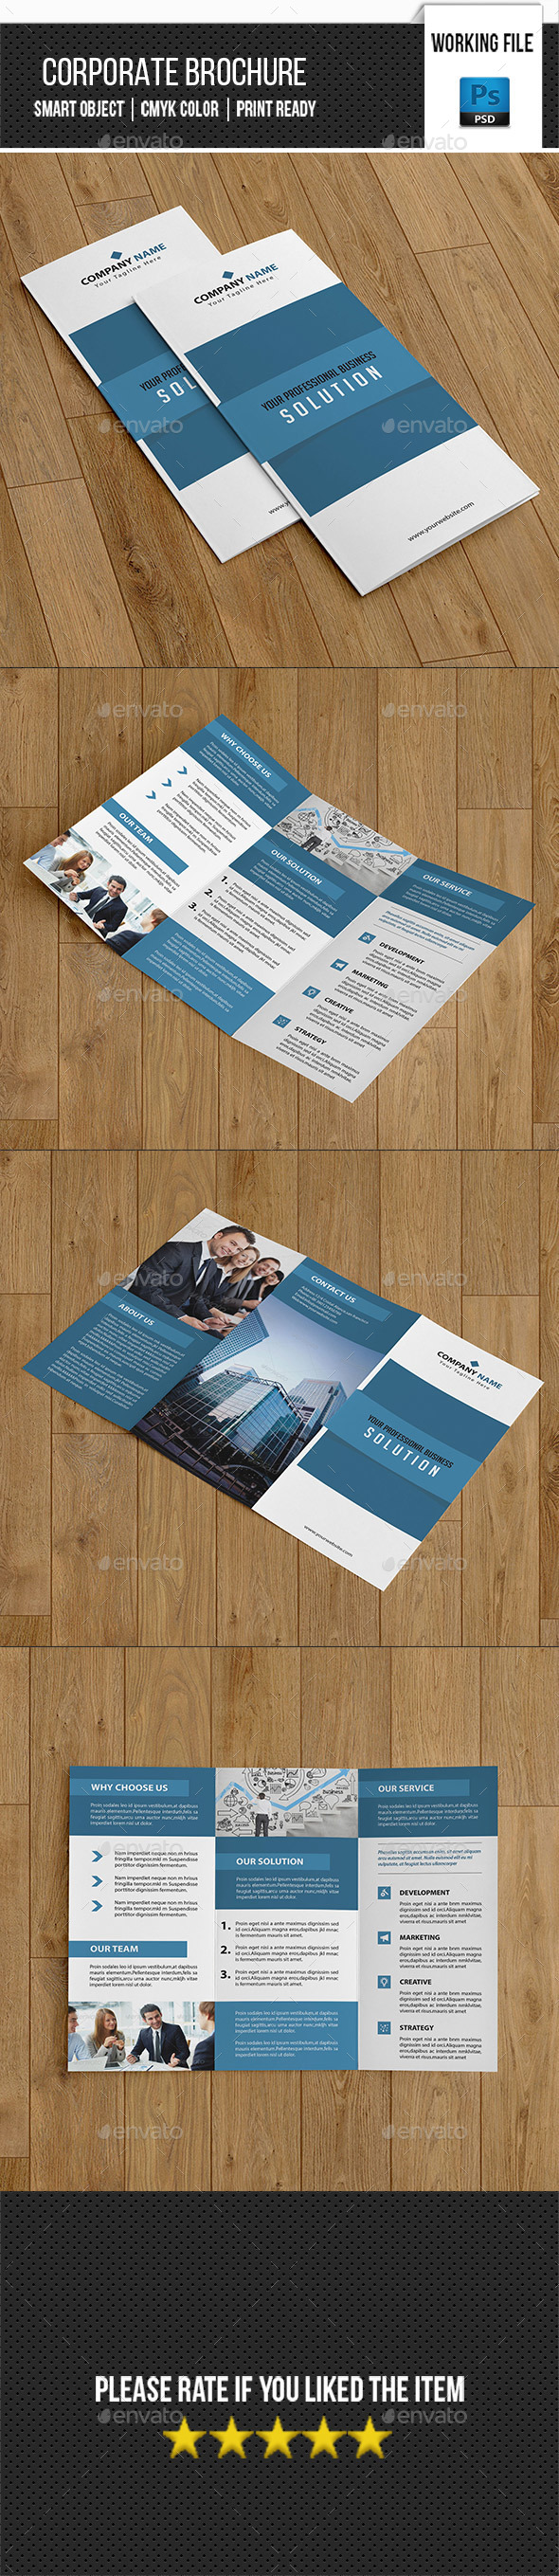 Corporate Trifold Brochure-V262 - Corporate Brochures